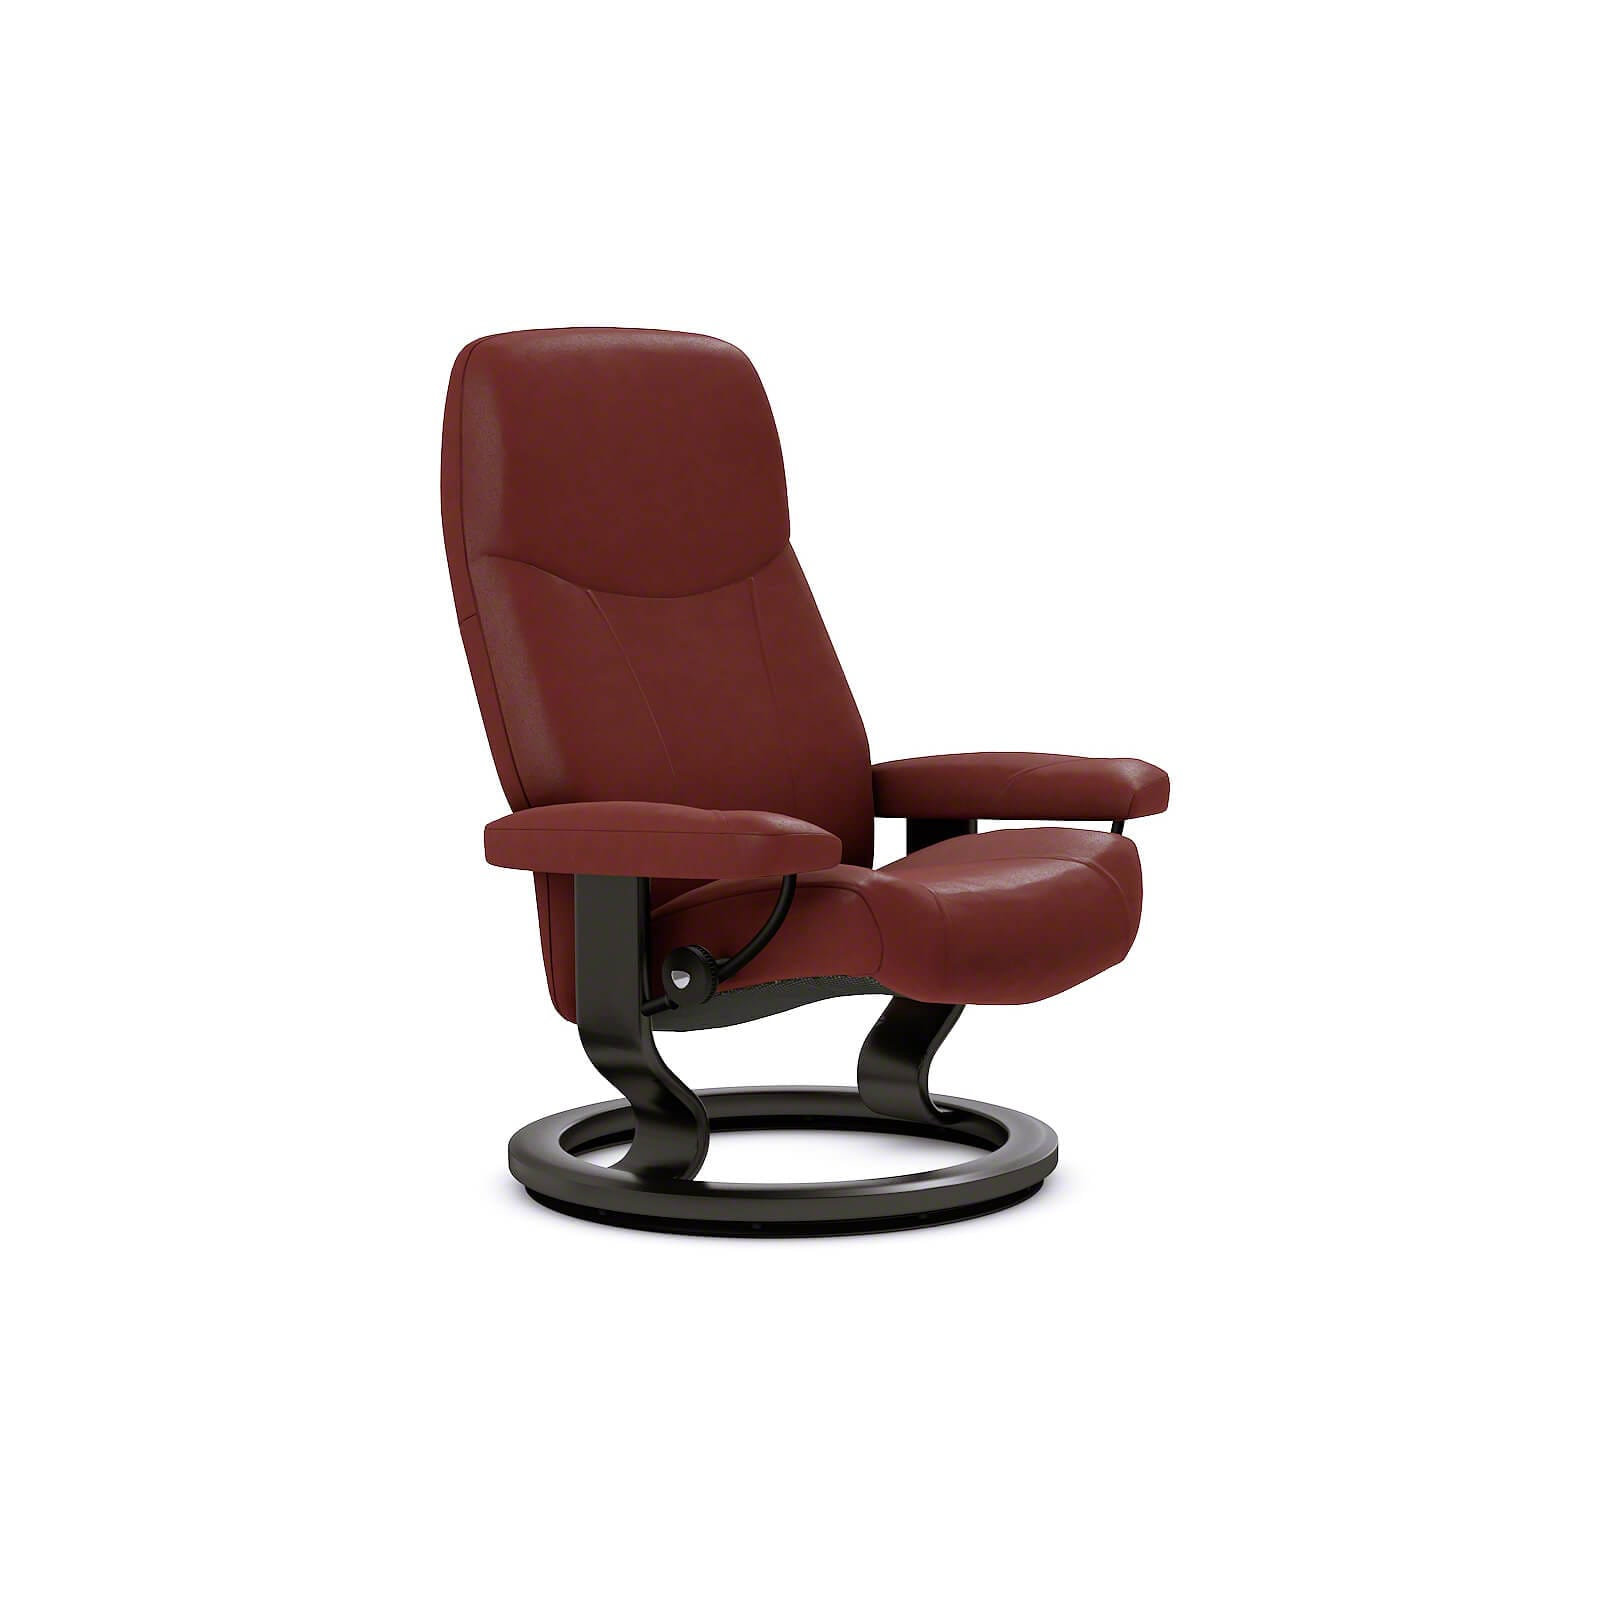 Stressless Sessel Paris High Back Stressless Sessel Paris